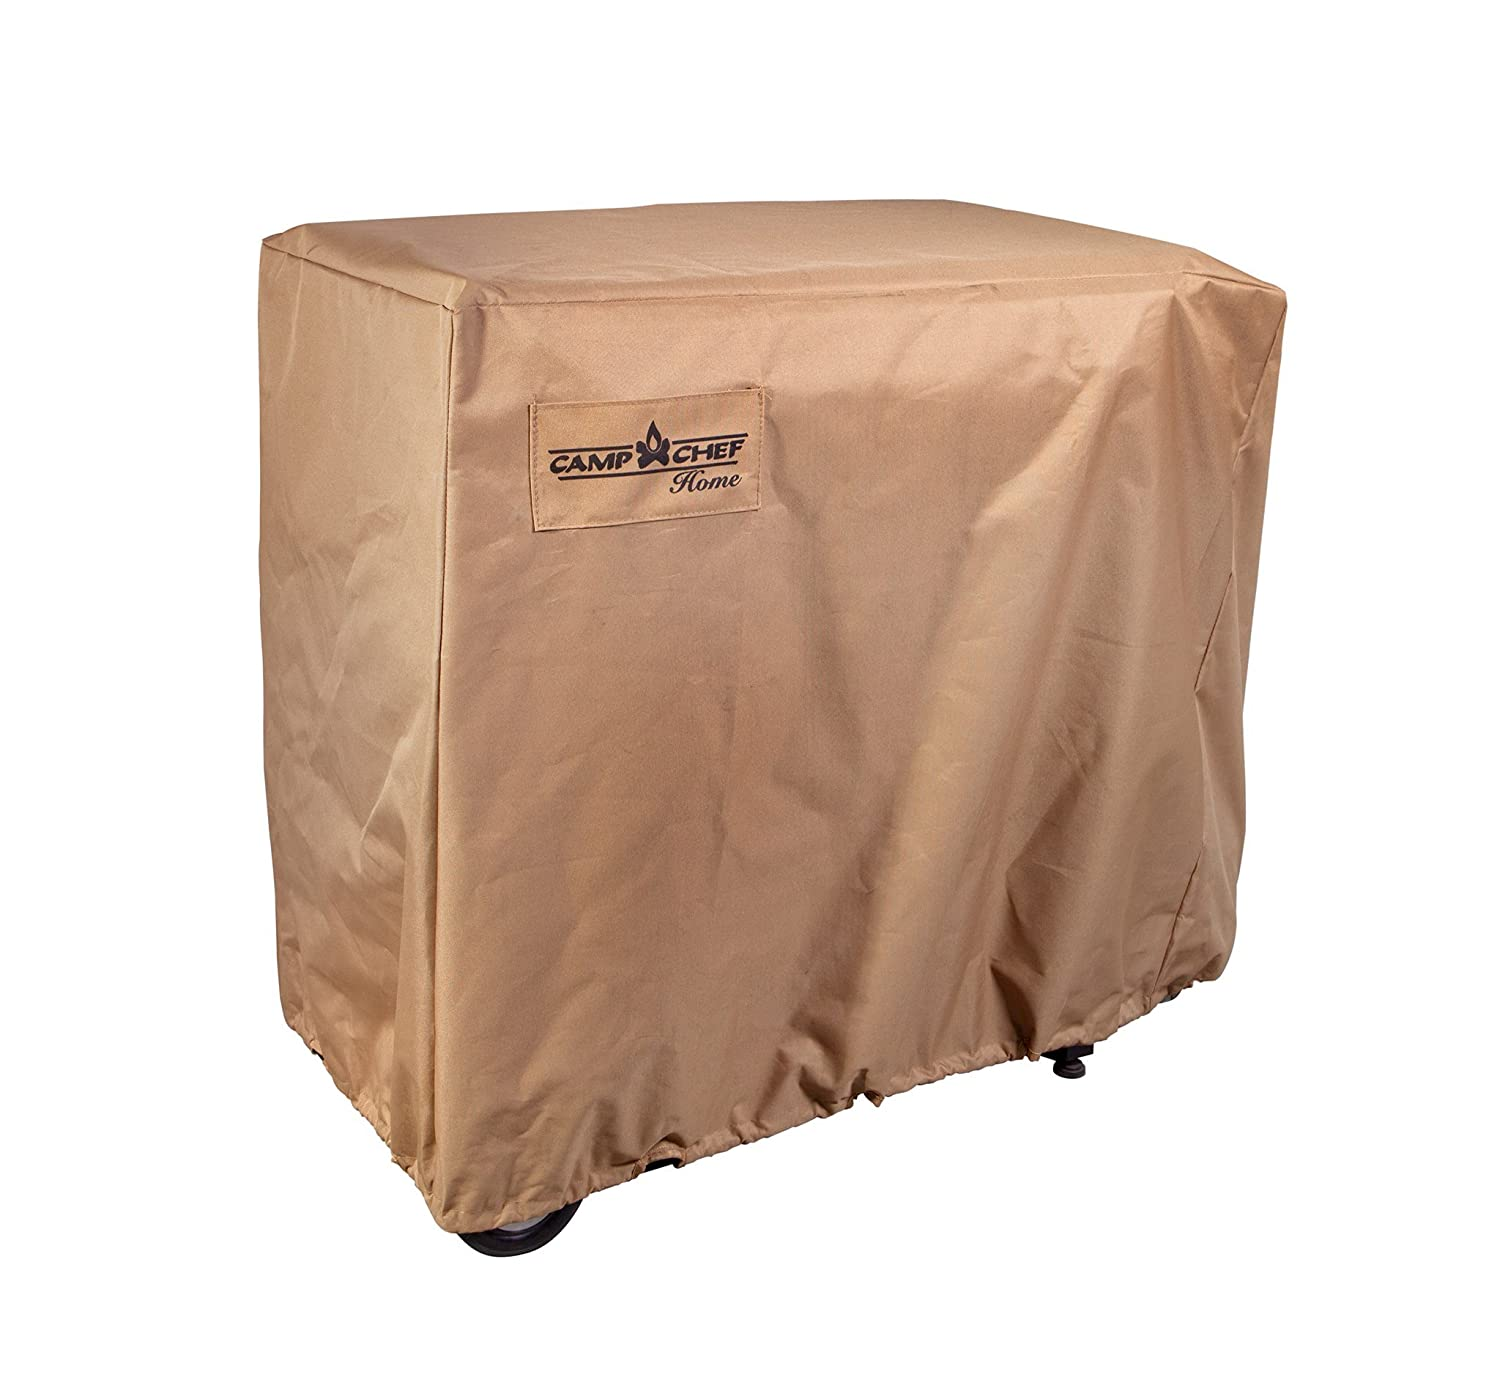 Camp Chef Flat Top Grill Patio Cover PCFTG